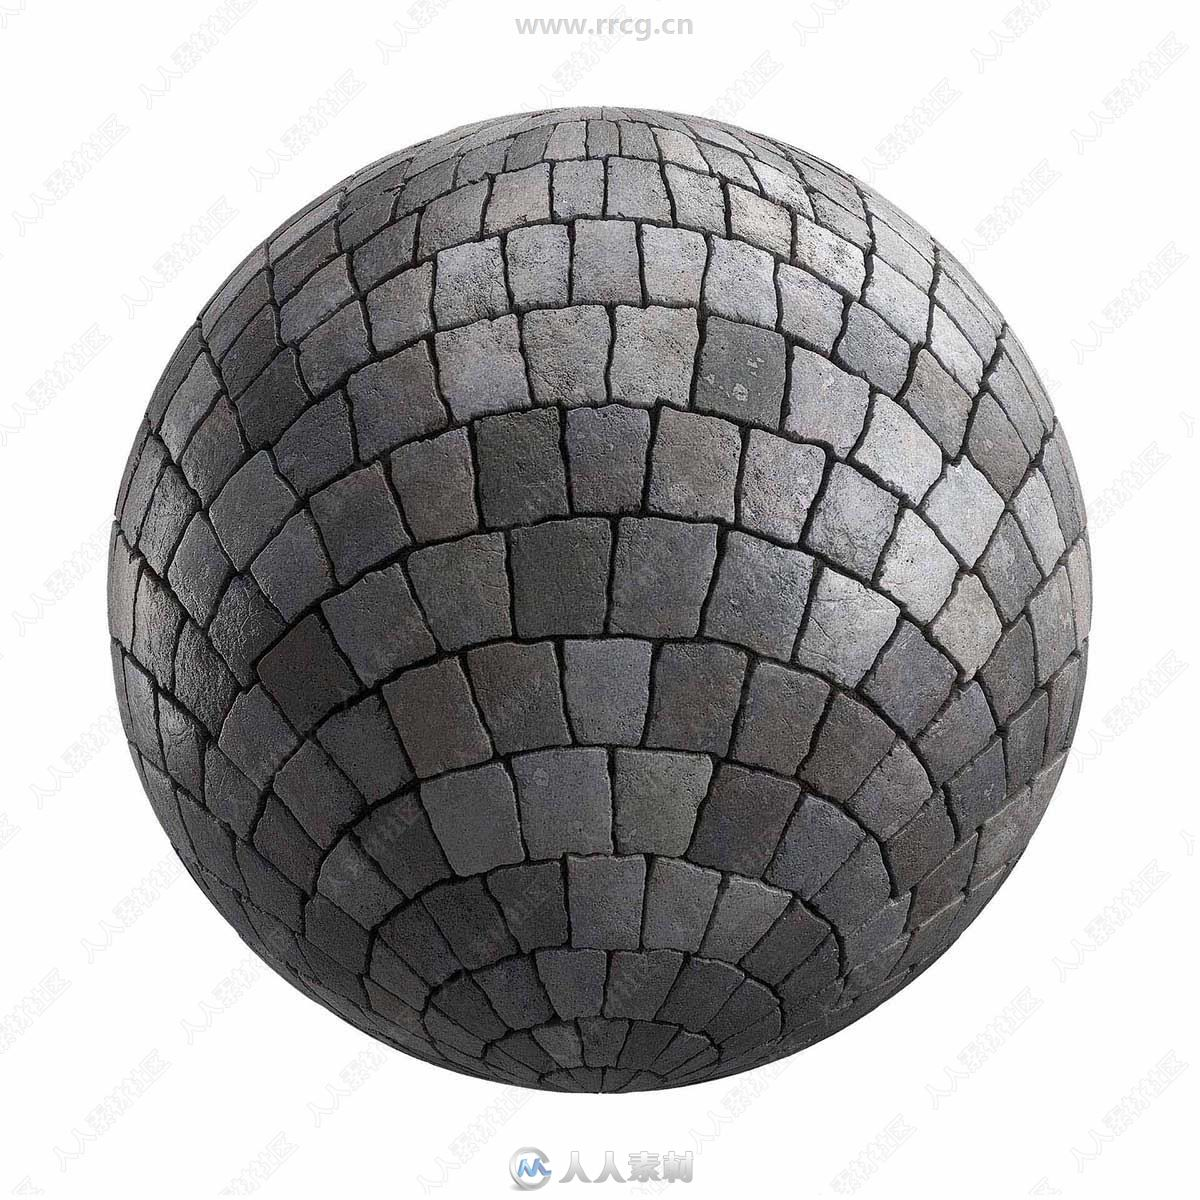 grey_rock_tiles_pavement_19_81_render.jpg